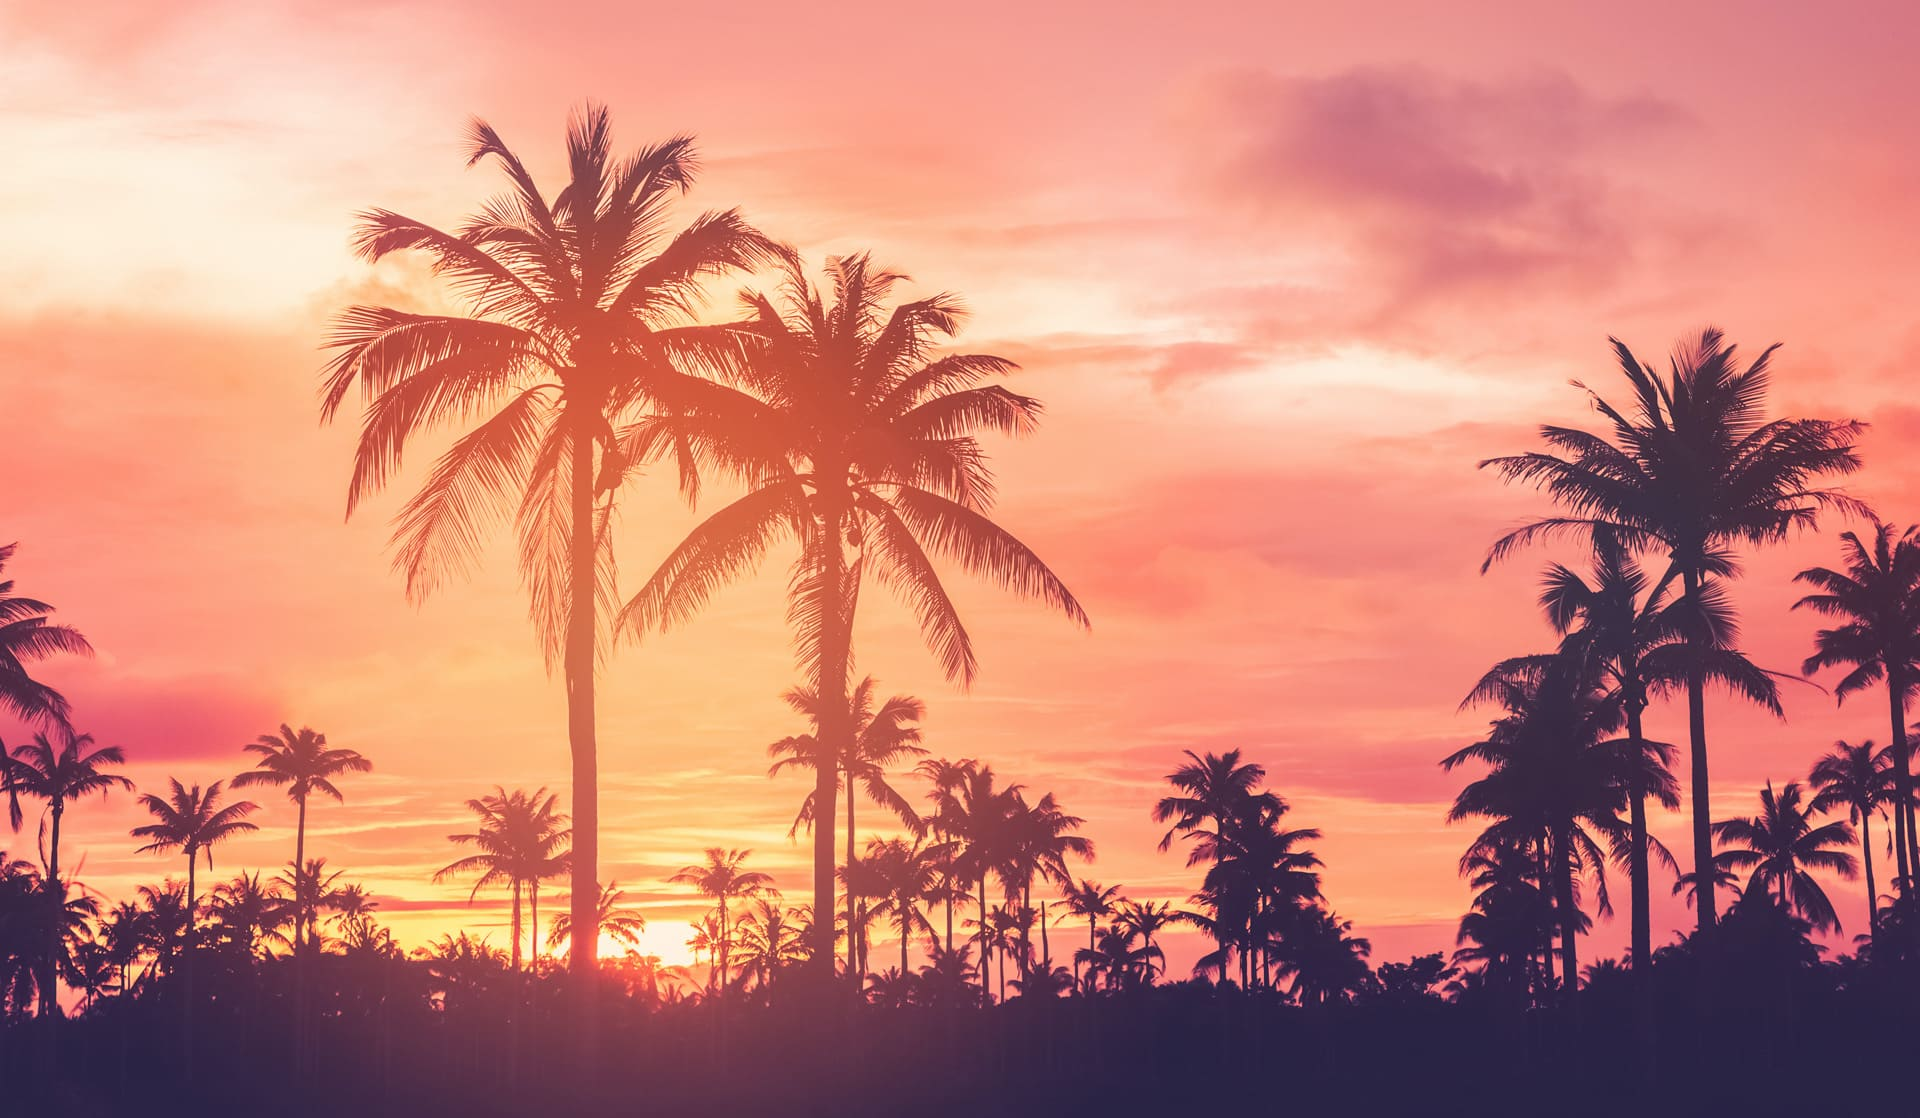 Southern California sunset scene with palm trees in front of an orange and pink sky.